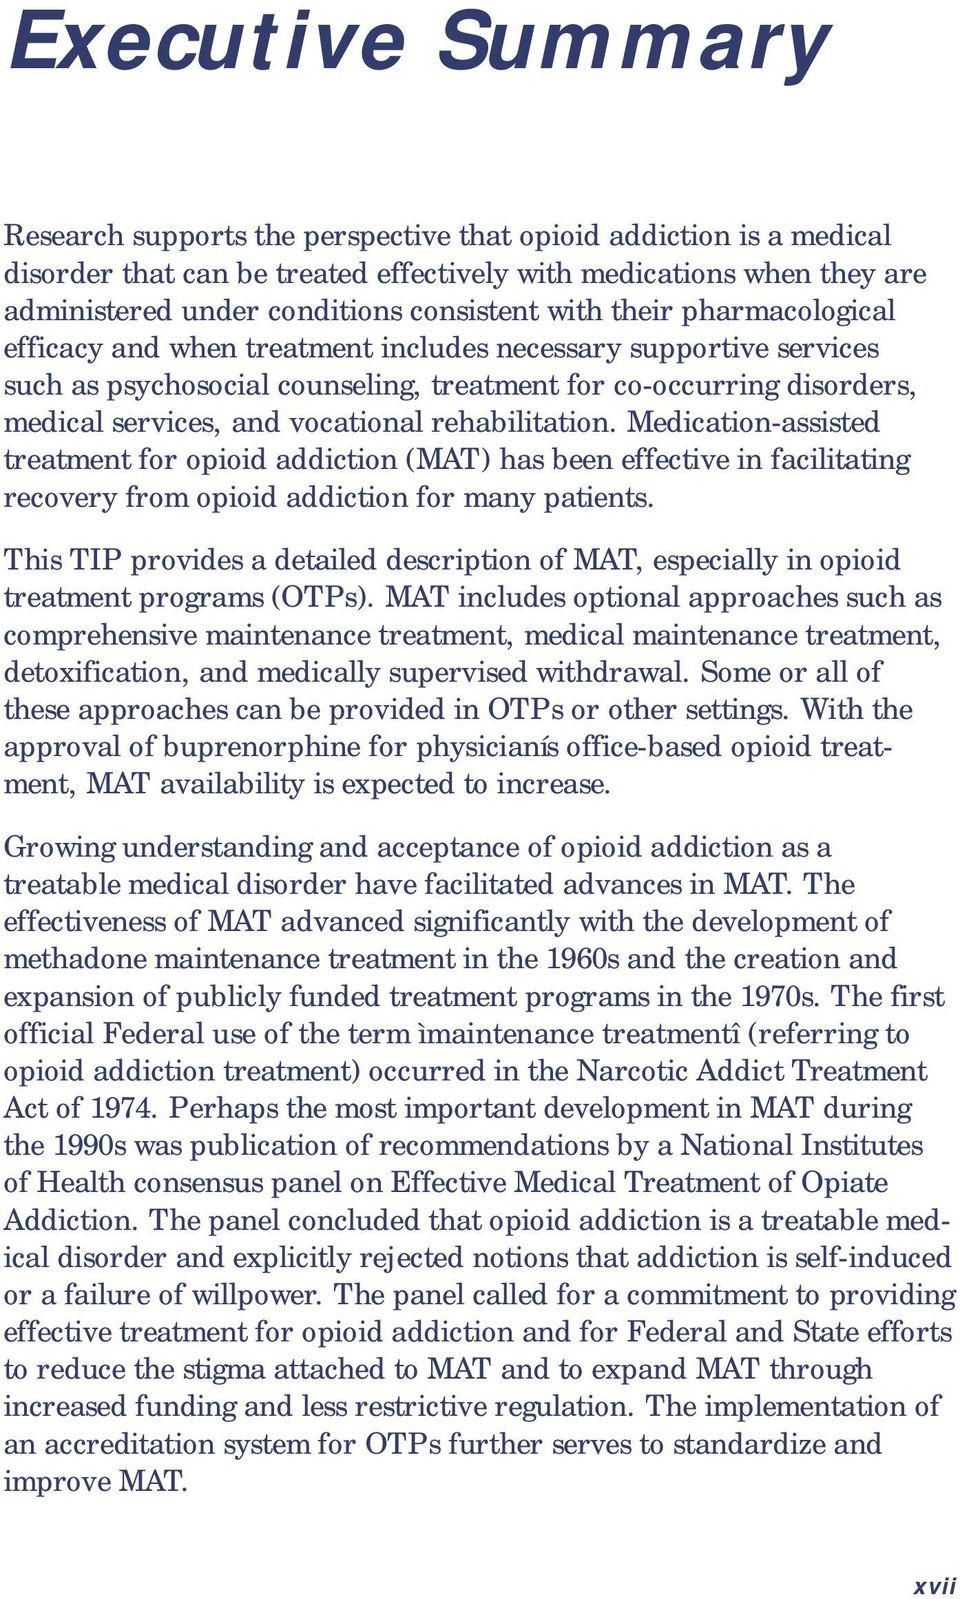 rehabilitation. Medication-assisted treatment for opioid addiction (MAT) has been effective in facilitating recovery from opioid addiction for many patients.